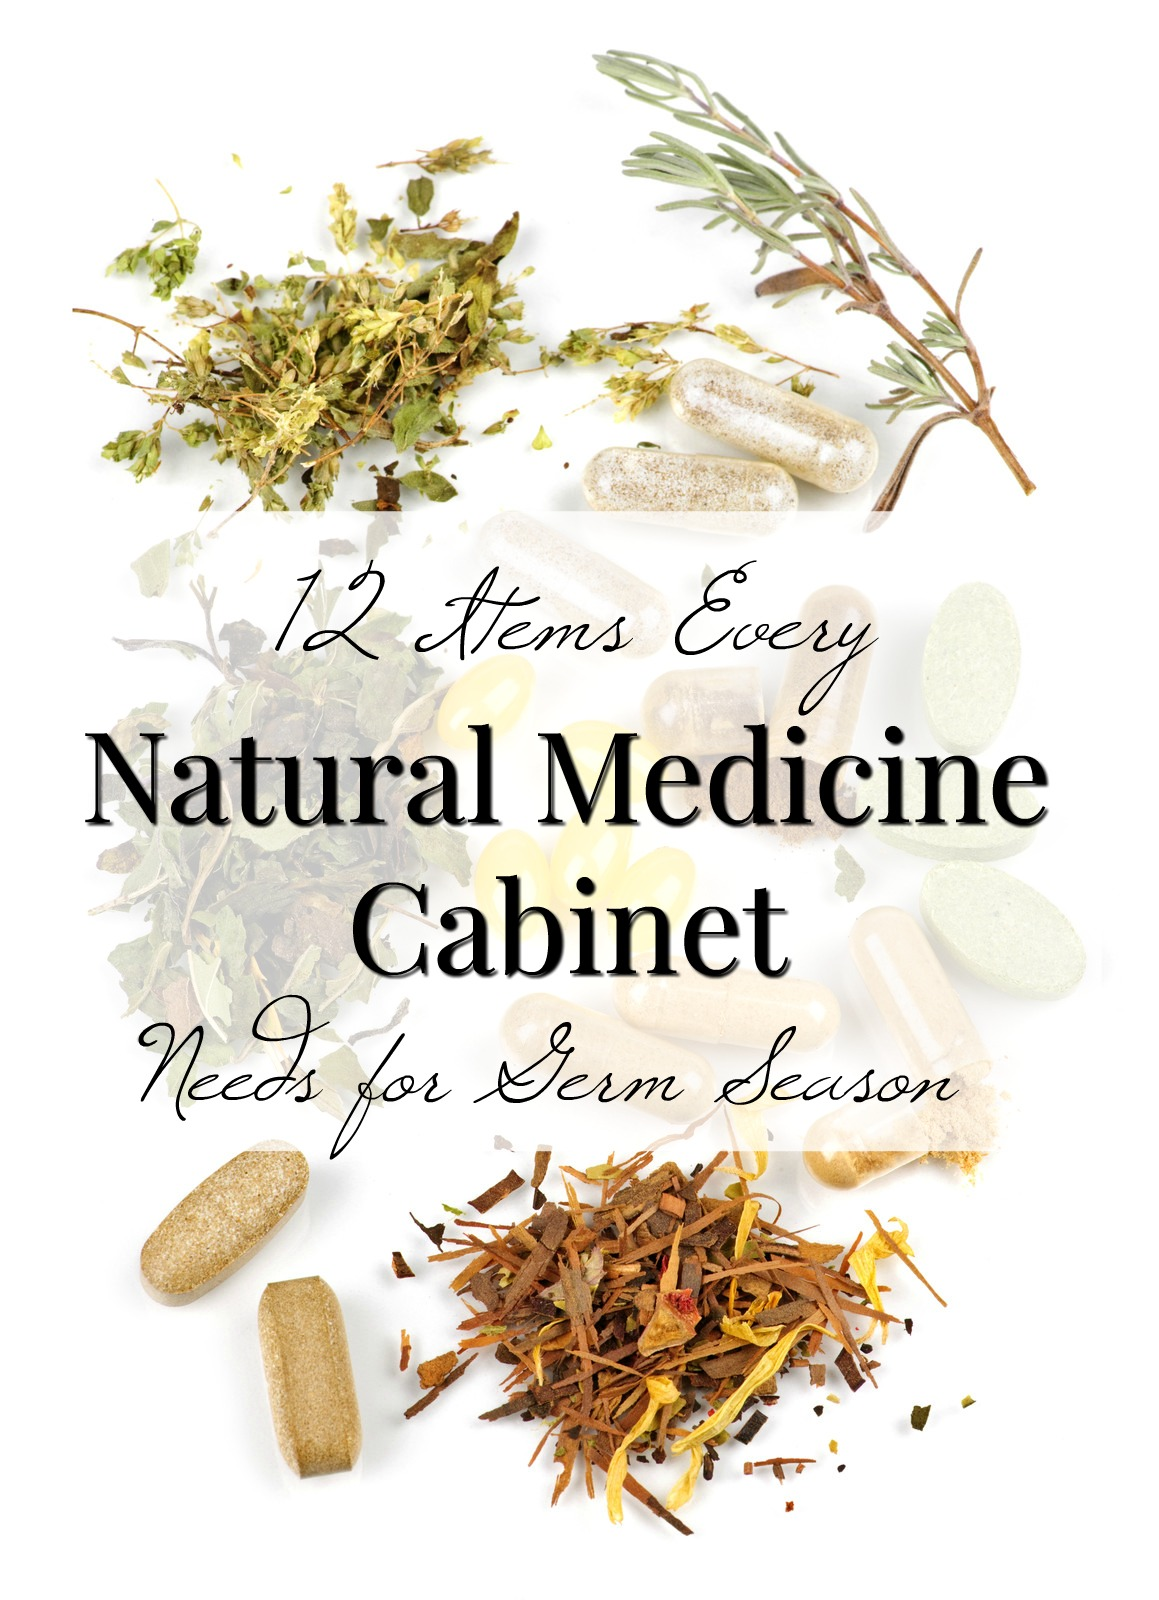 Building A Natural Medicine Cabinet The Basics For Germ